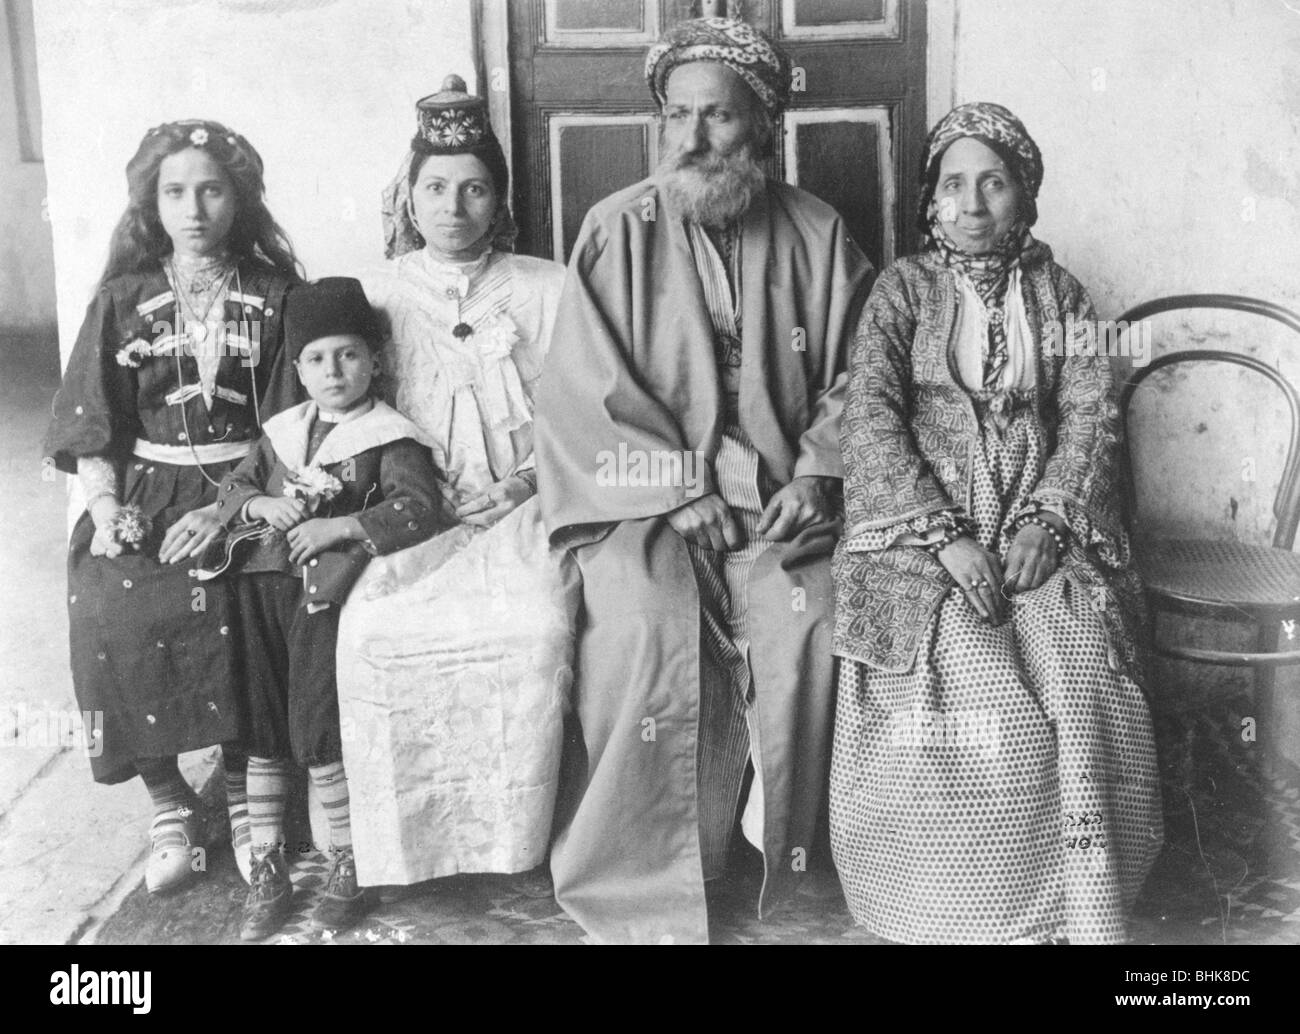 Jewish family in Baghdad, 1910. - Stock Image